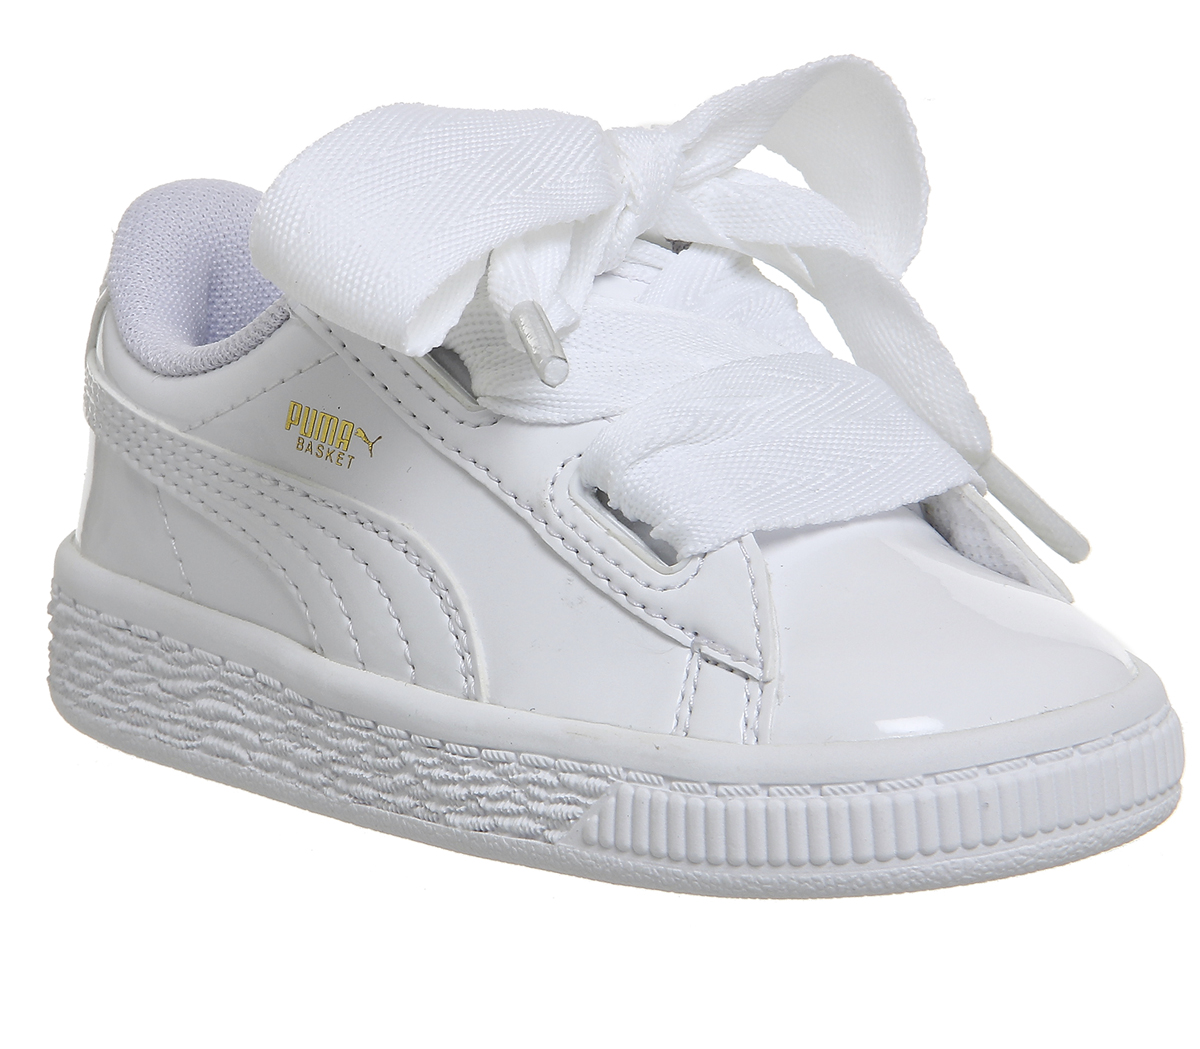 unisex puma basket heart inf wei wei patent kinder ebay. Black Bedroom Furniture Sets. Home Design Ideas